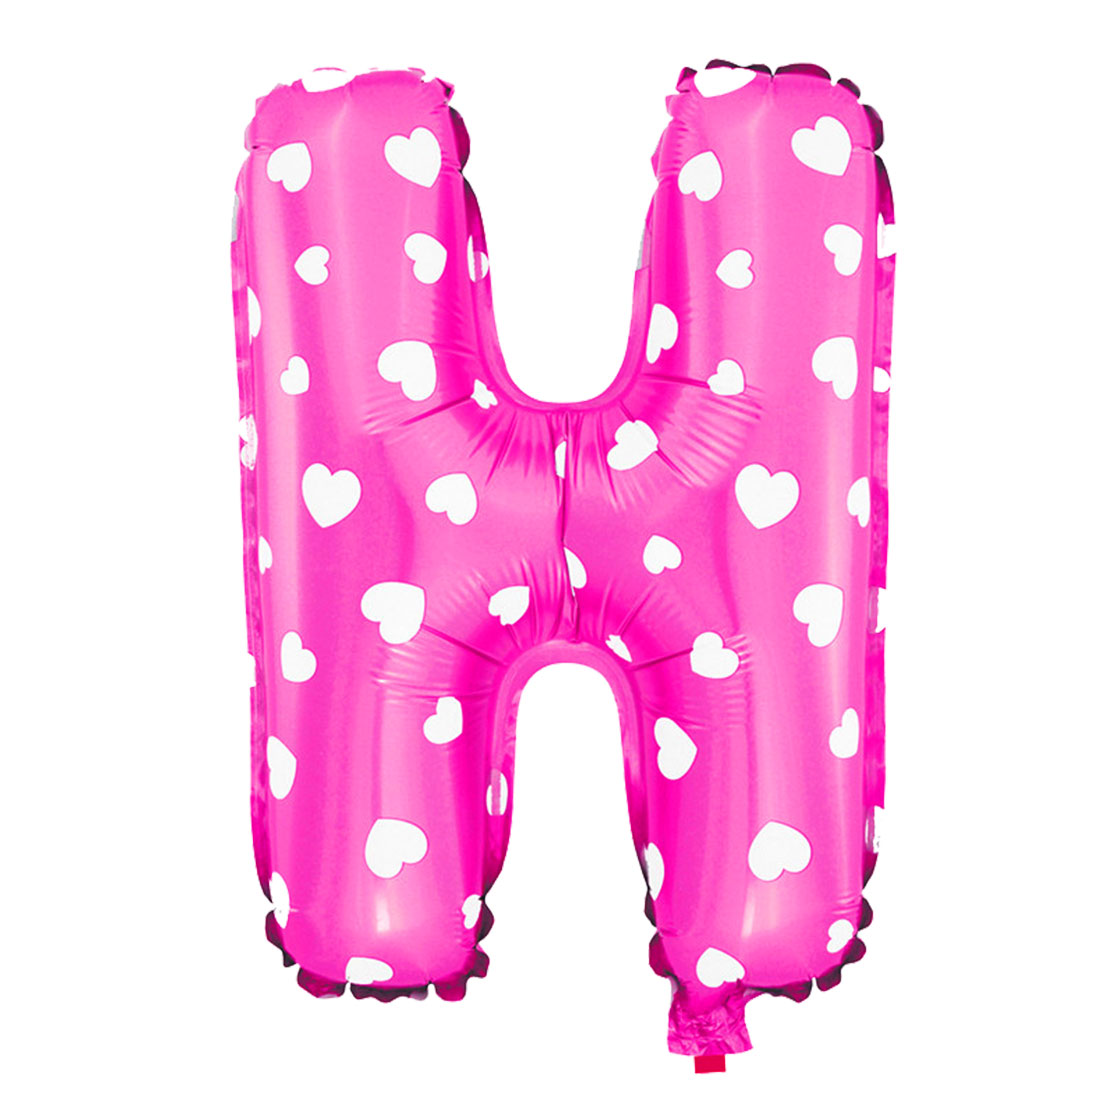 Unique Bargains Foil Letter H Heart Pattern Helium Balloon Birthday Wedding Decor Fuchsia 16""